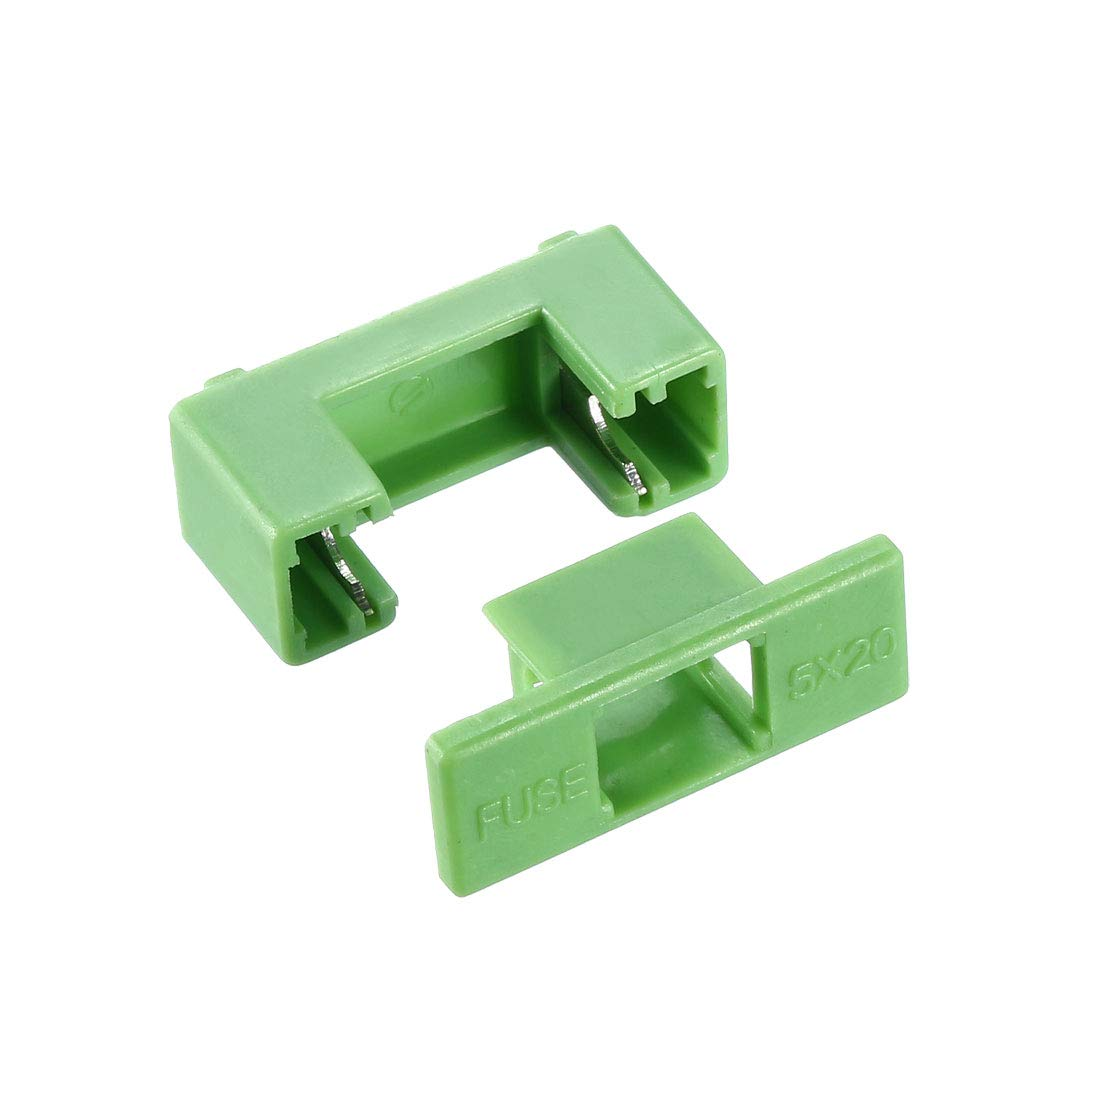 uxcell 250V 6.3A Dual Terminals 5x20mm Fuse PCB Panel Mount Holder Case Green 10Pcs